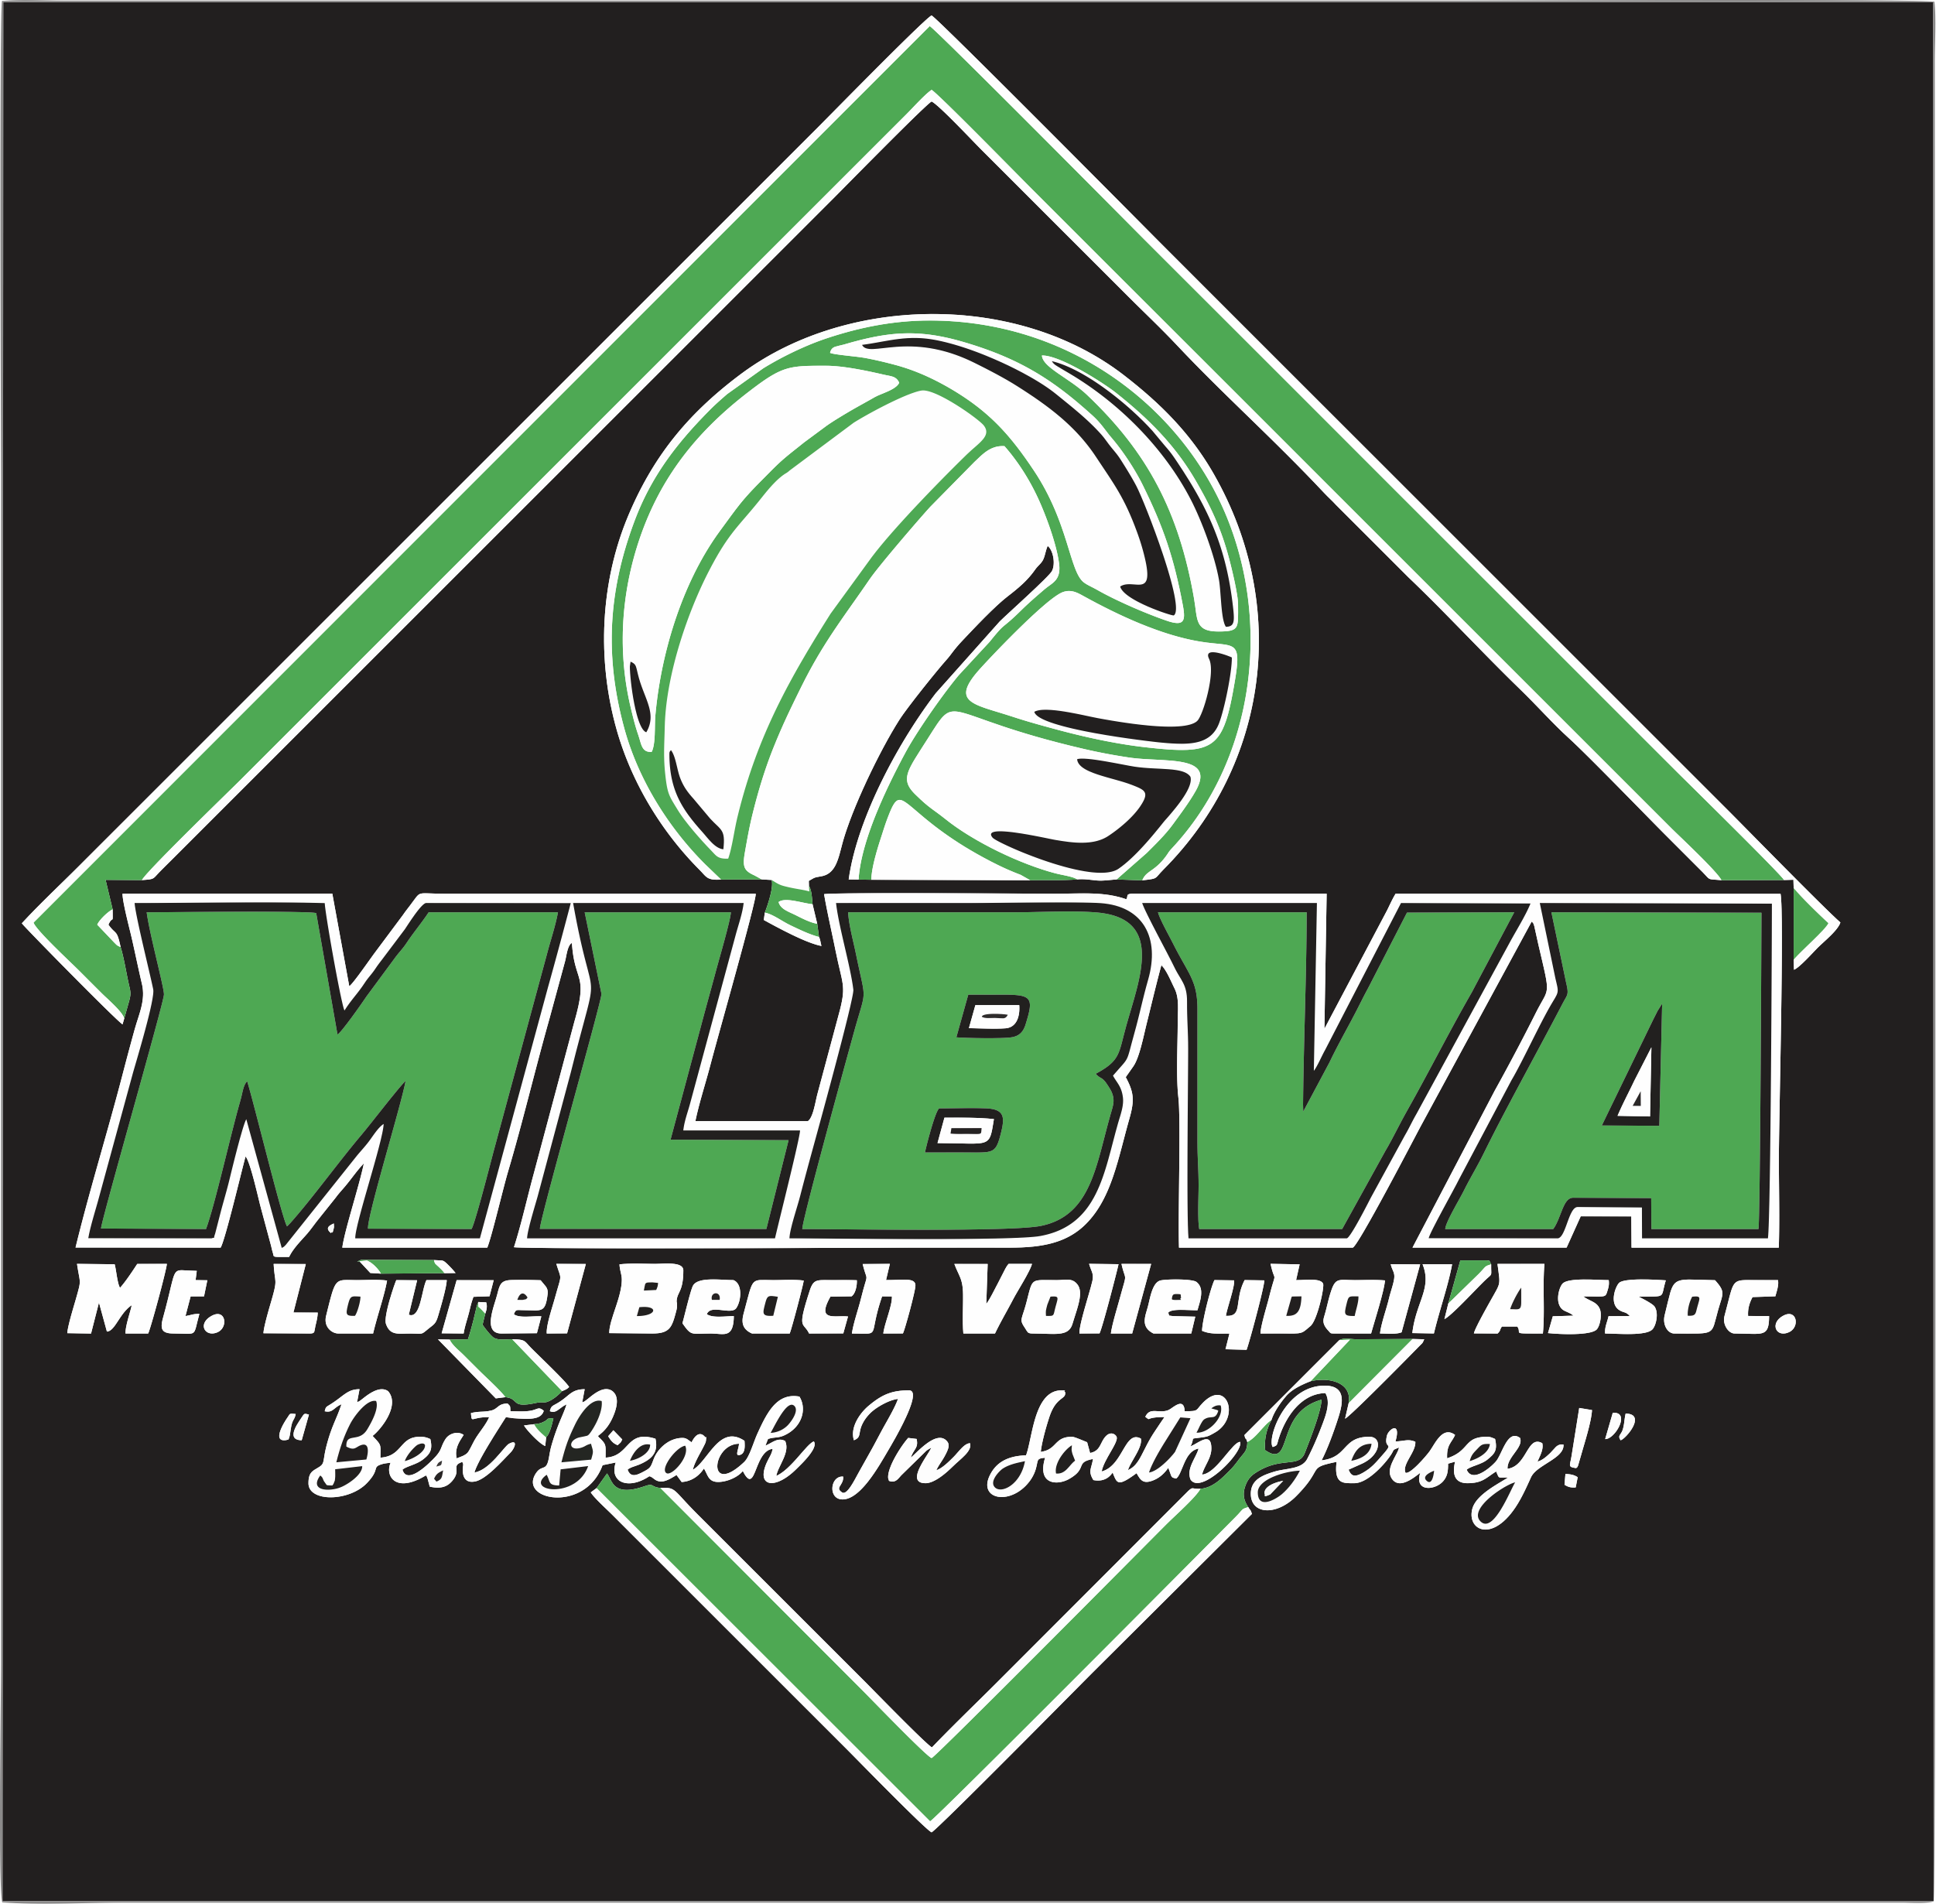 Mt Laurel Beach Volleyball Association